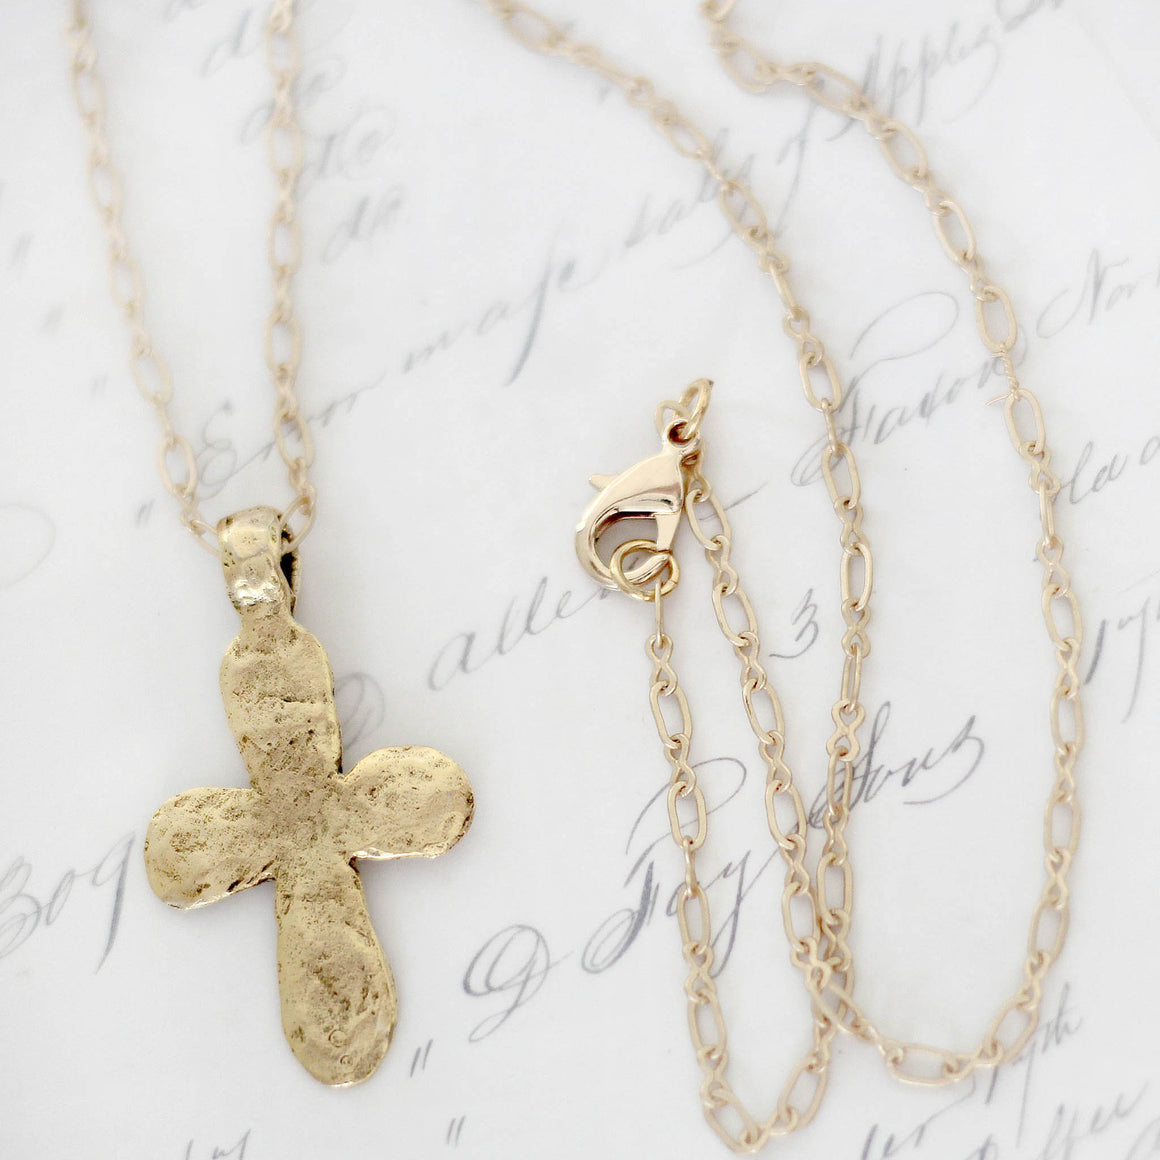 Gold Hammered Cross Pendant Necklace close up